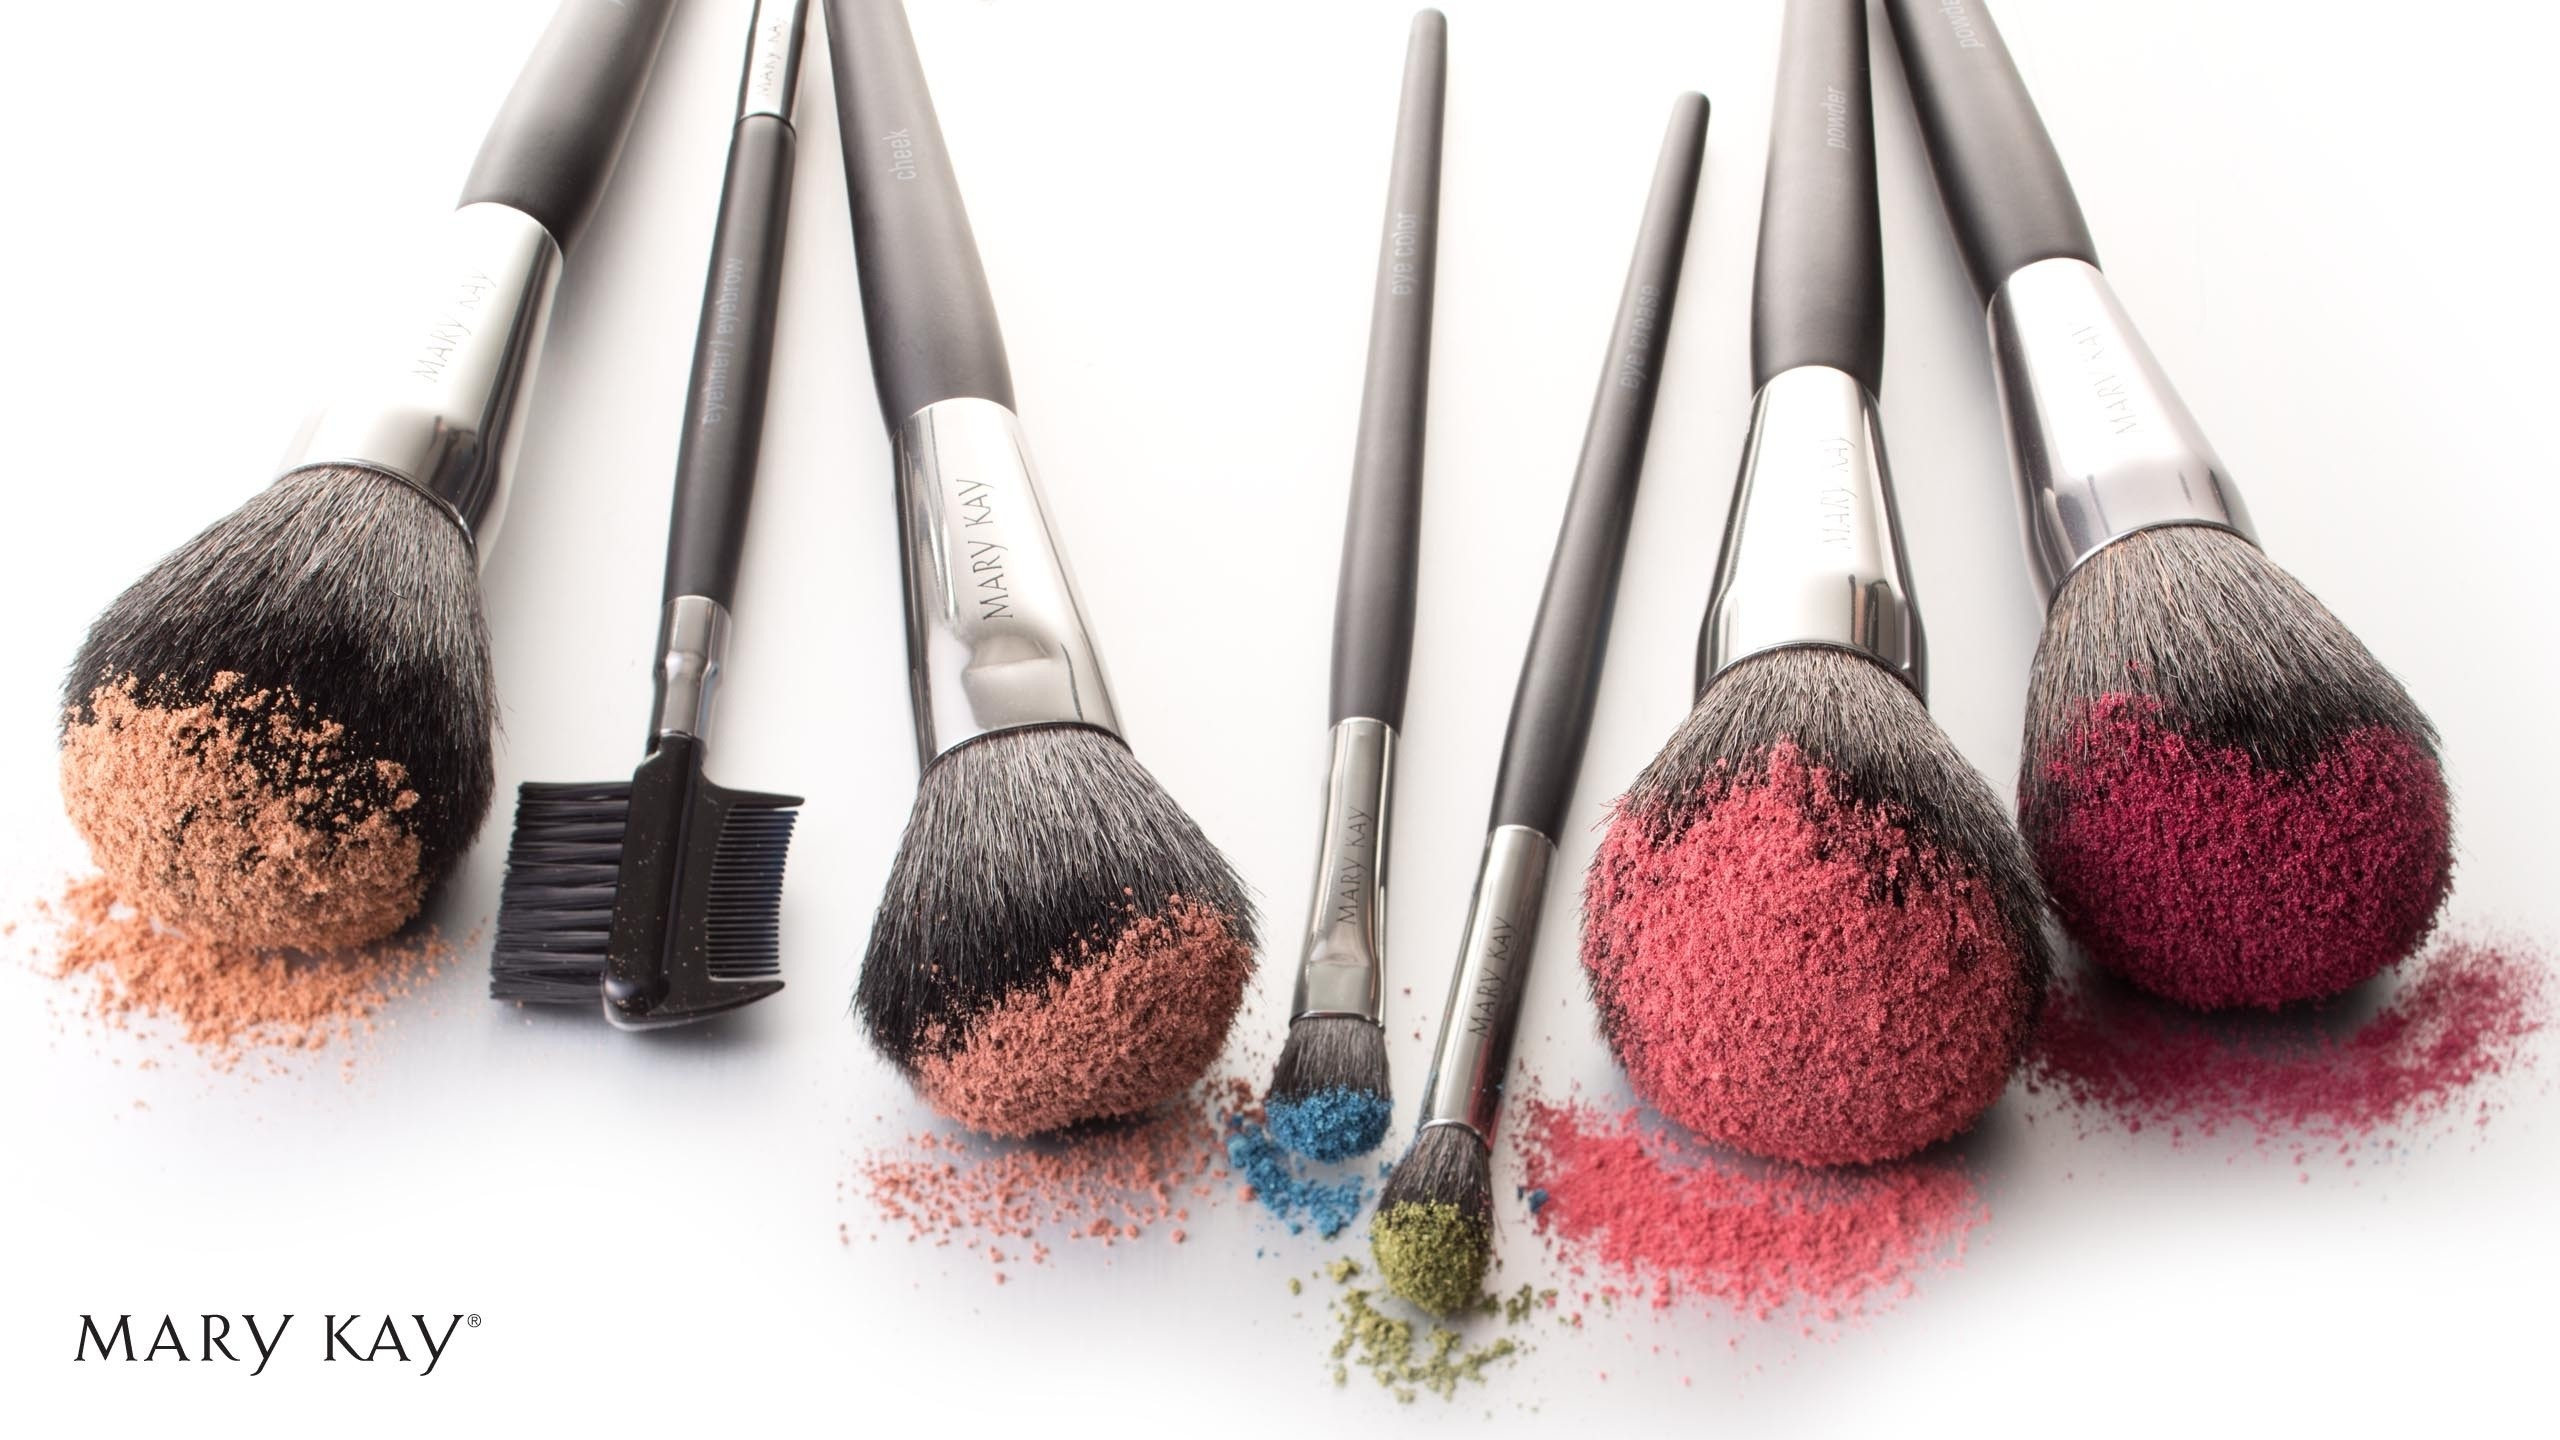 17 Best Images About Marykay On Pinterest | Iphone Backgrounds pertaining  to Mary Kay Banner 18112